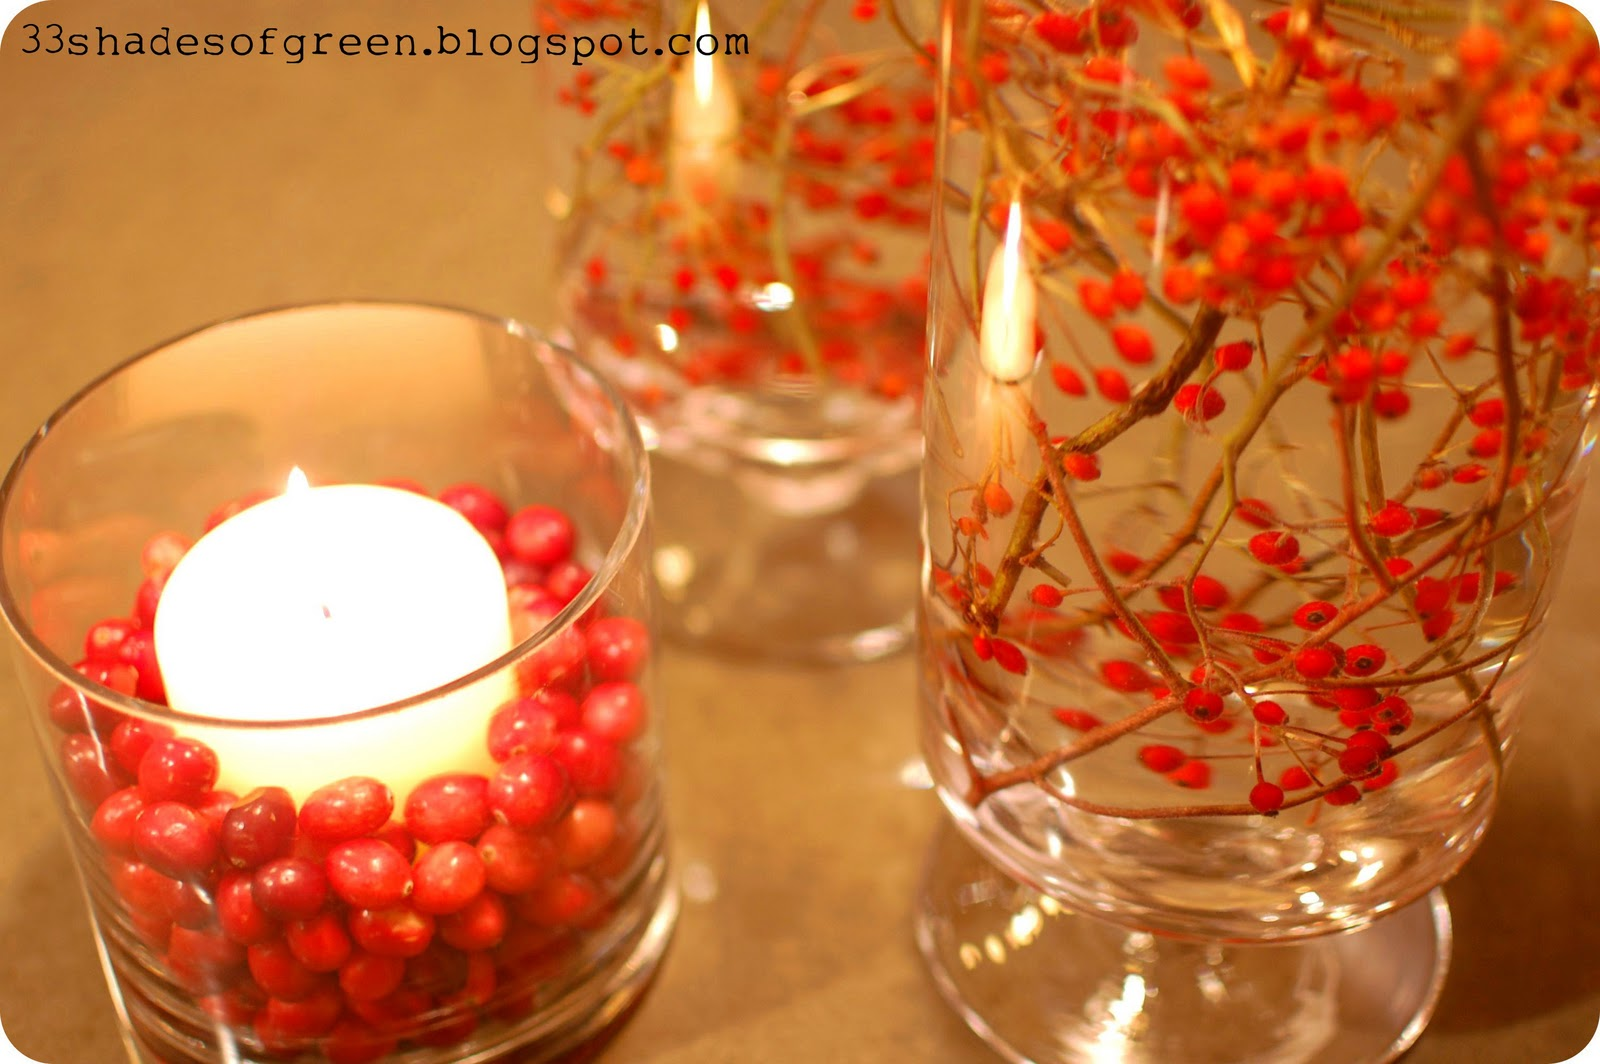 Homemade Centerpiece Ideas : Shades of green handmade holidays easy centerpiece